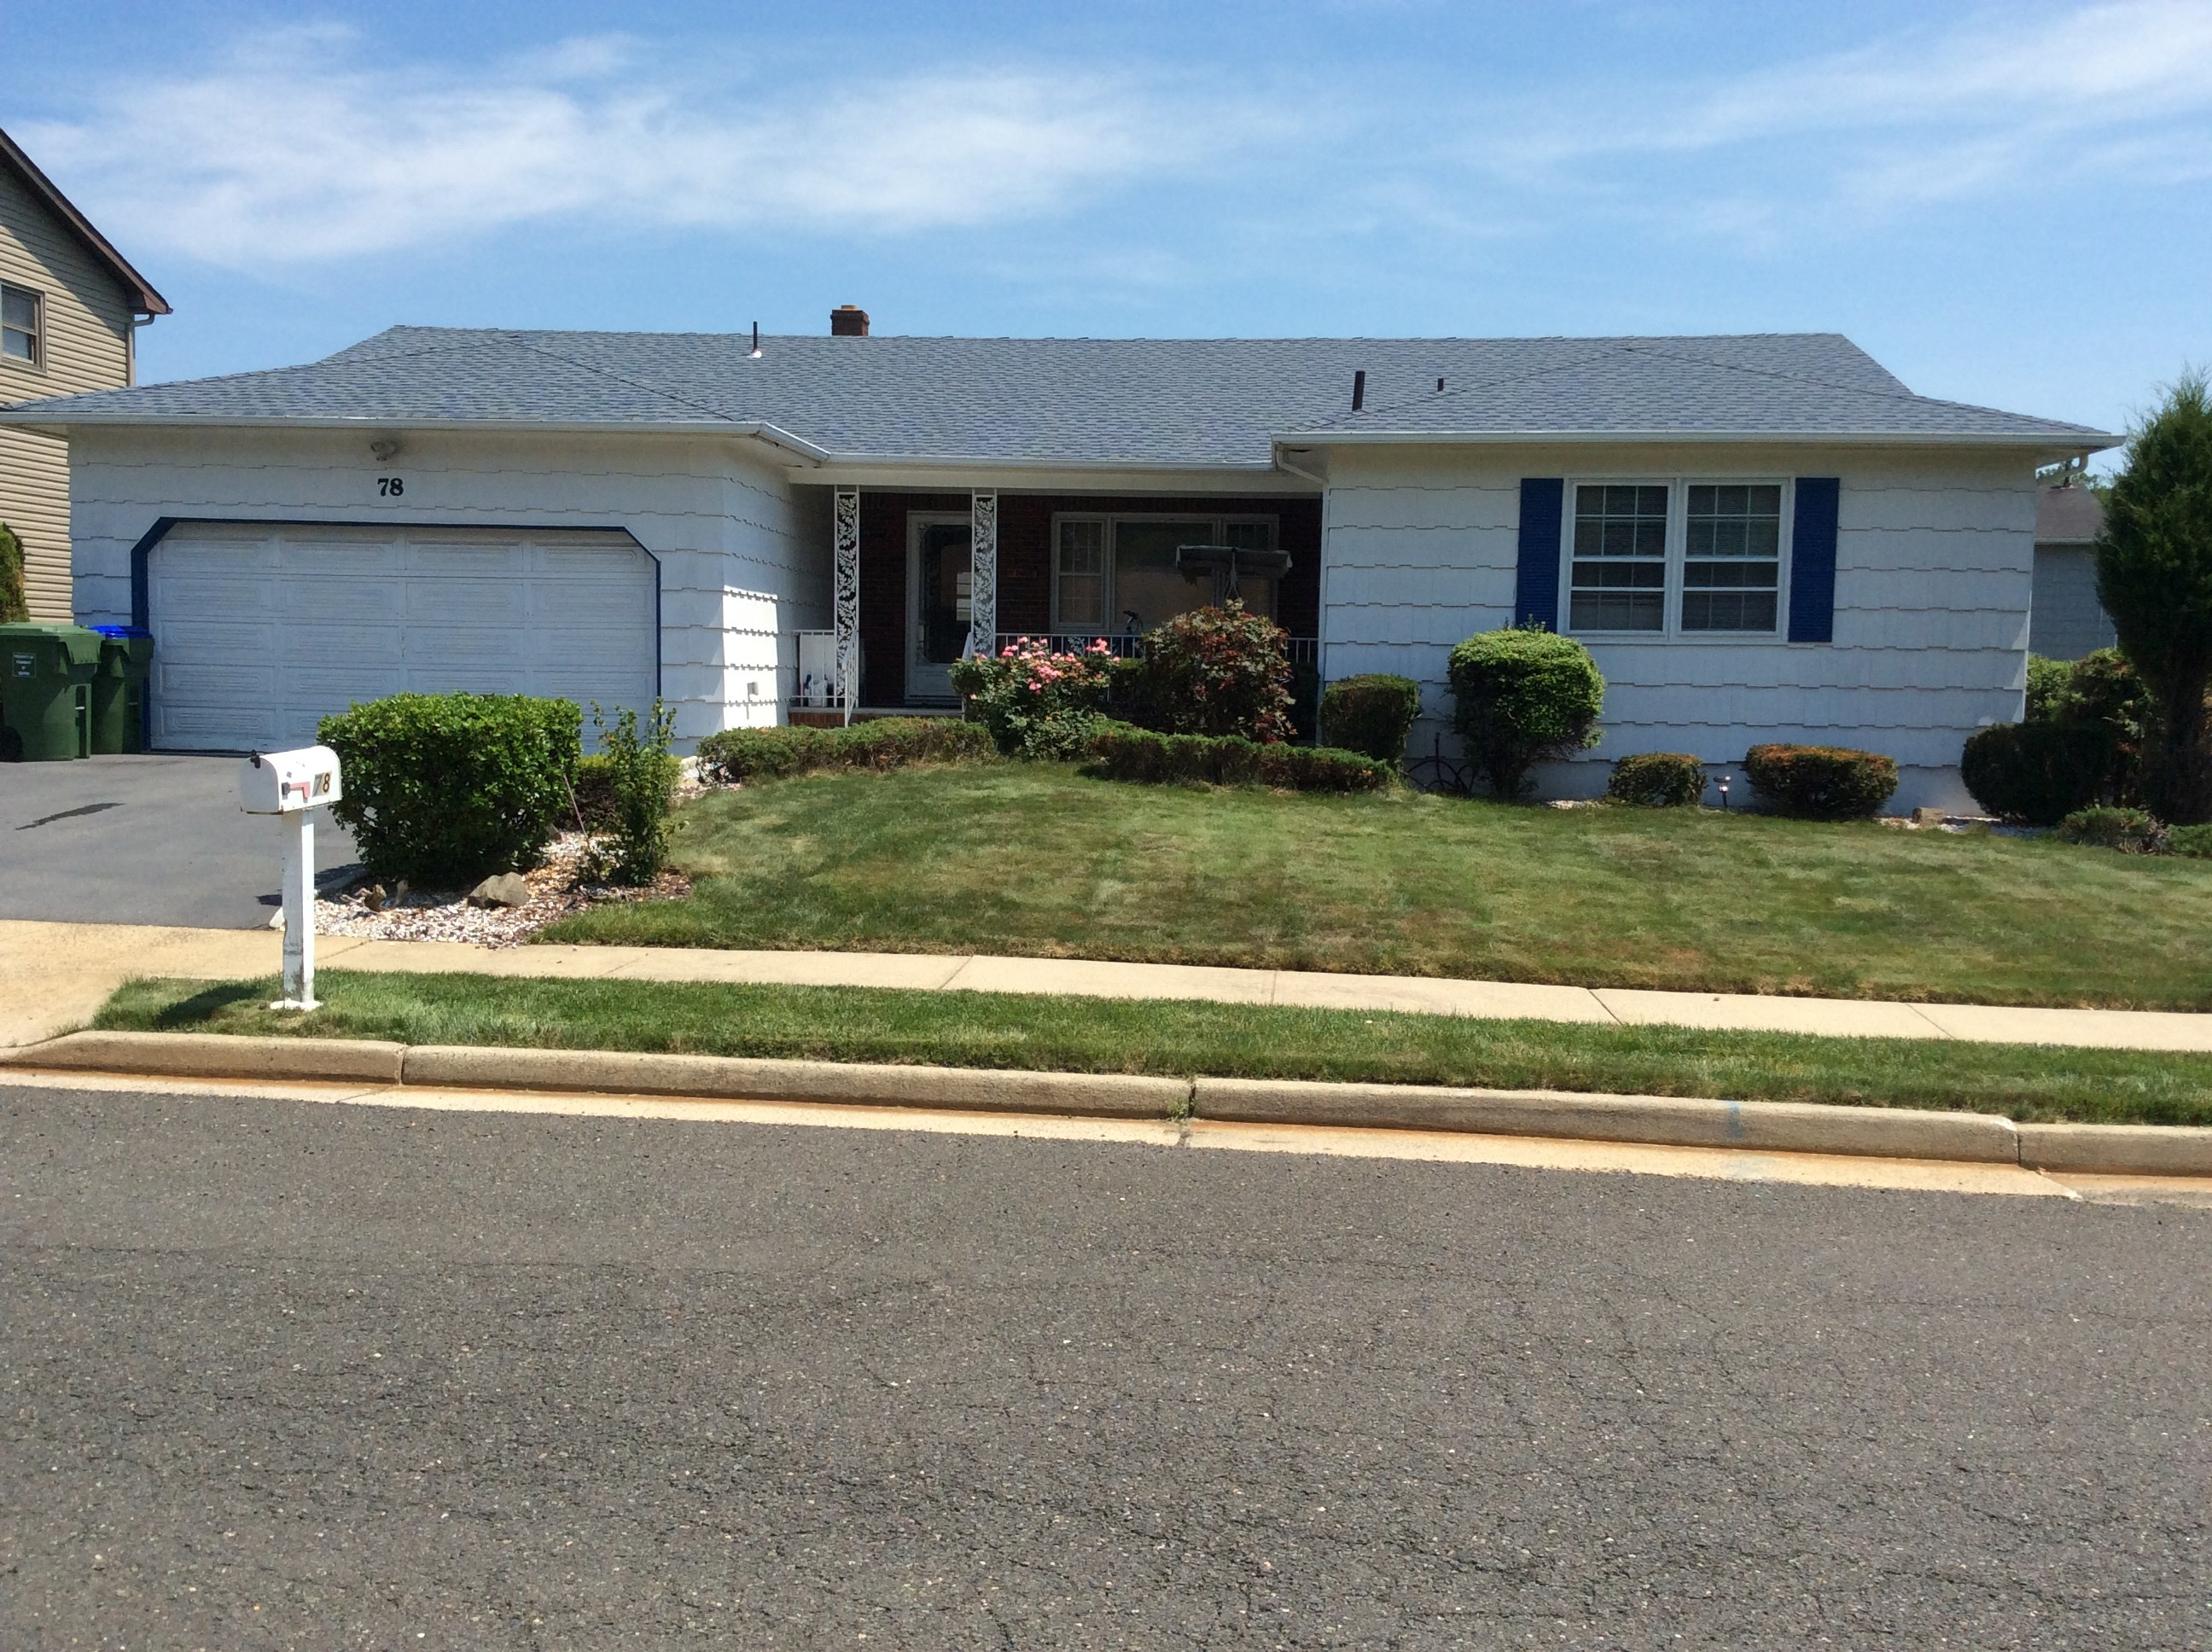 48 Agatha Dr Single Family Home For Rent In Edison NJ 3 BHK Single Famil